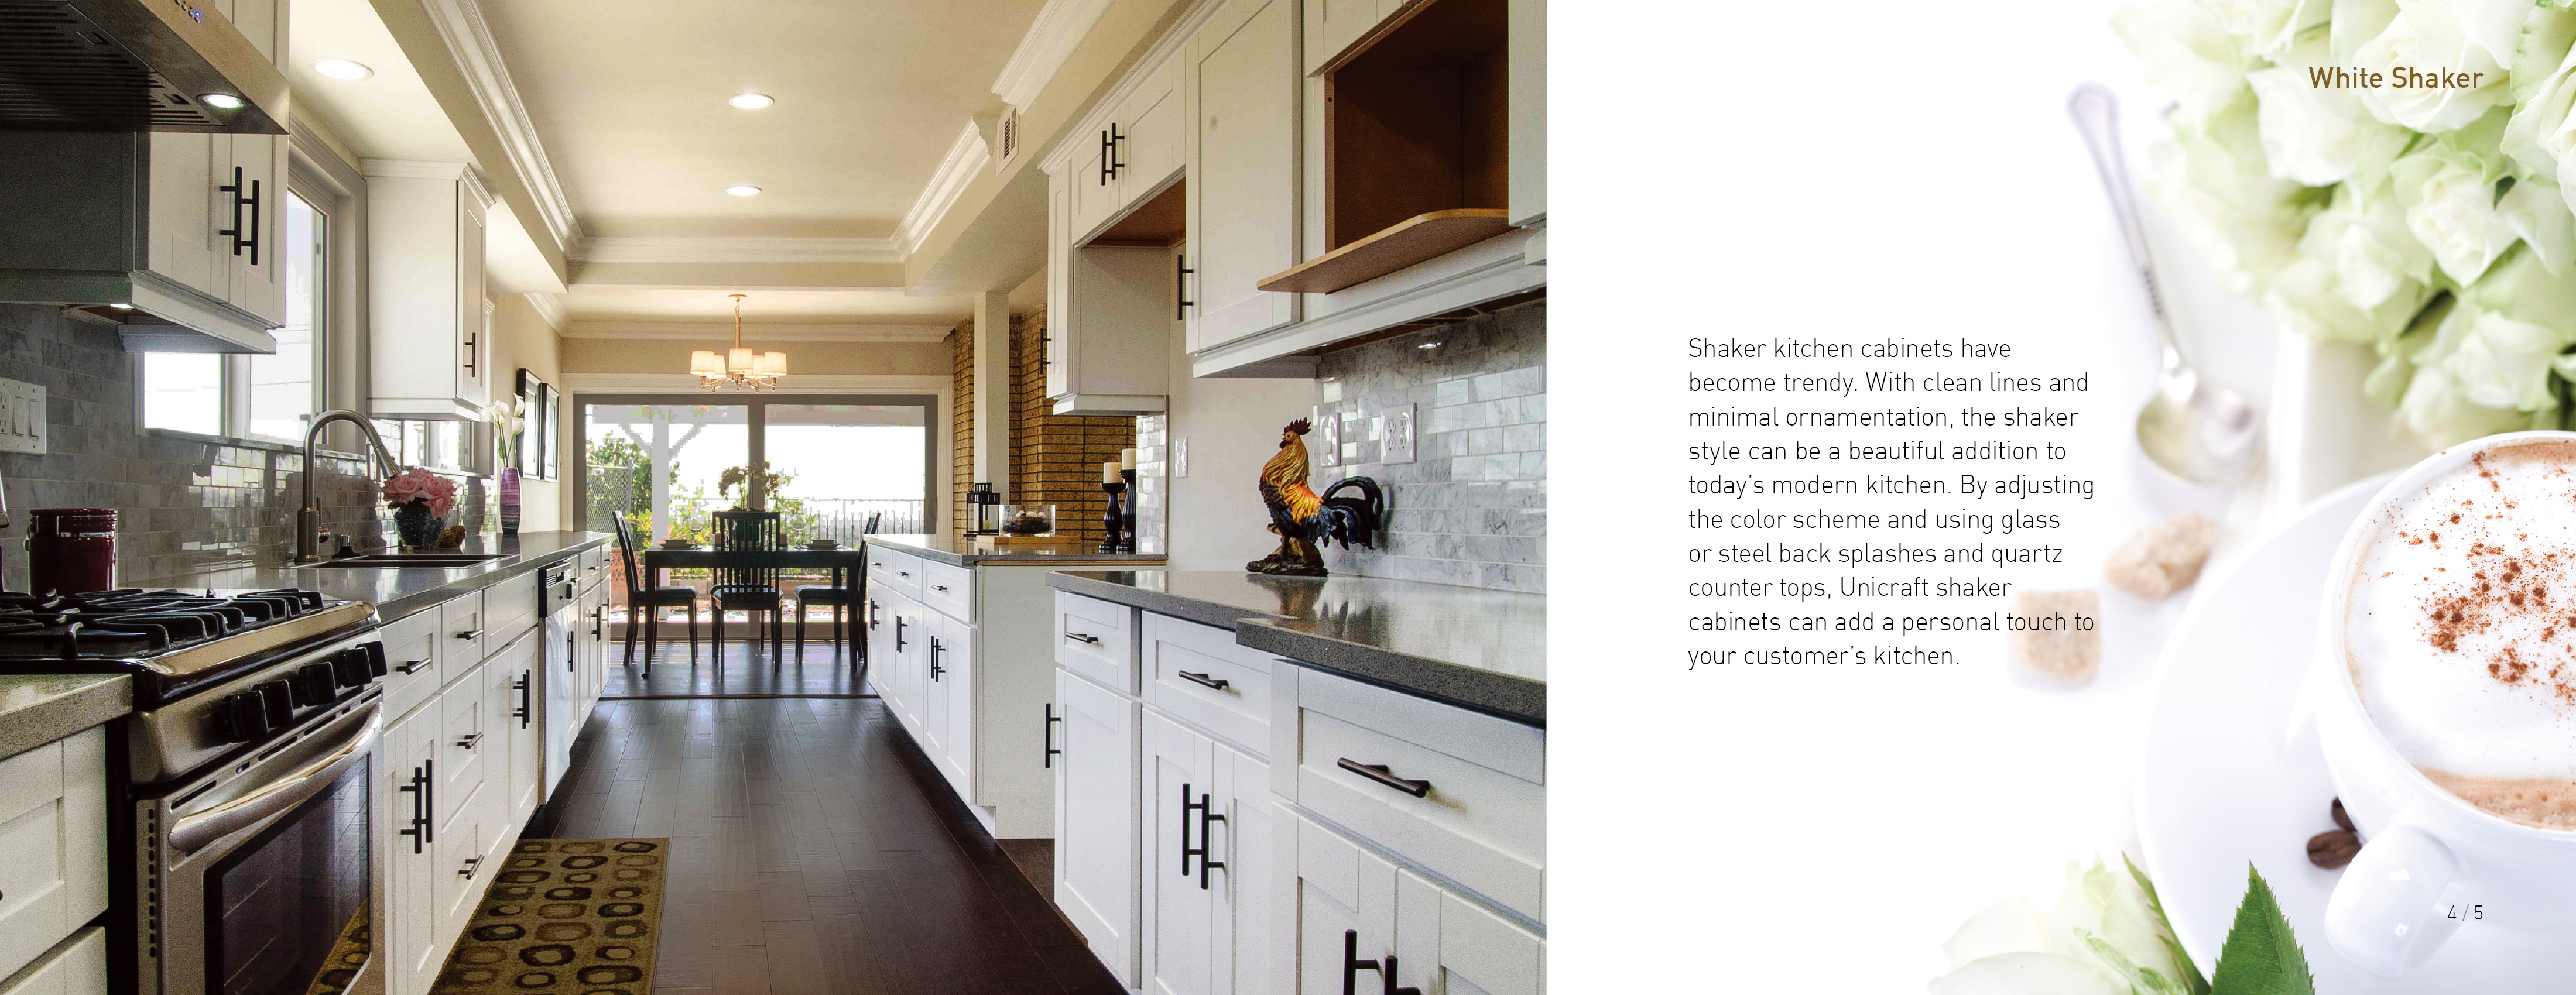 Unicraft Cabinetry, Inc - City of Industry, California | ProView